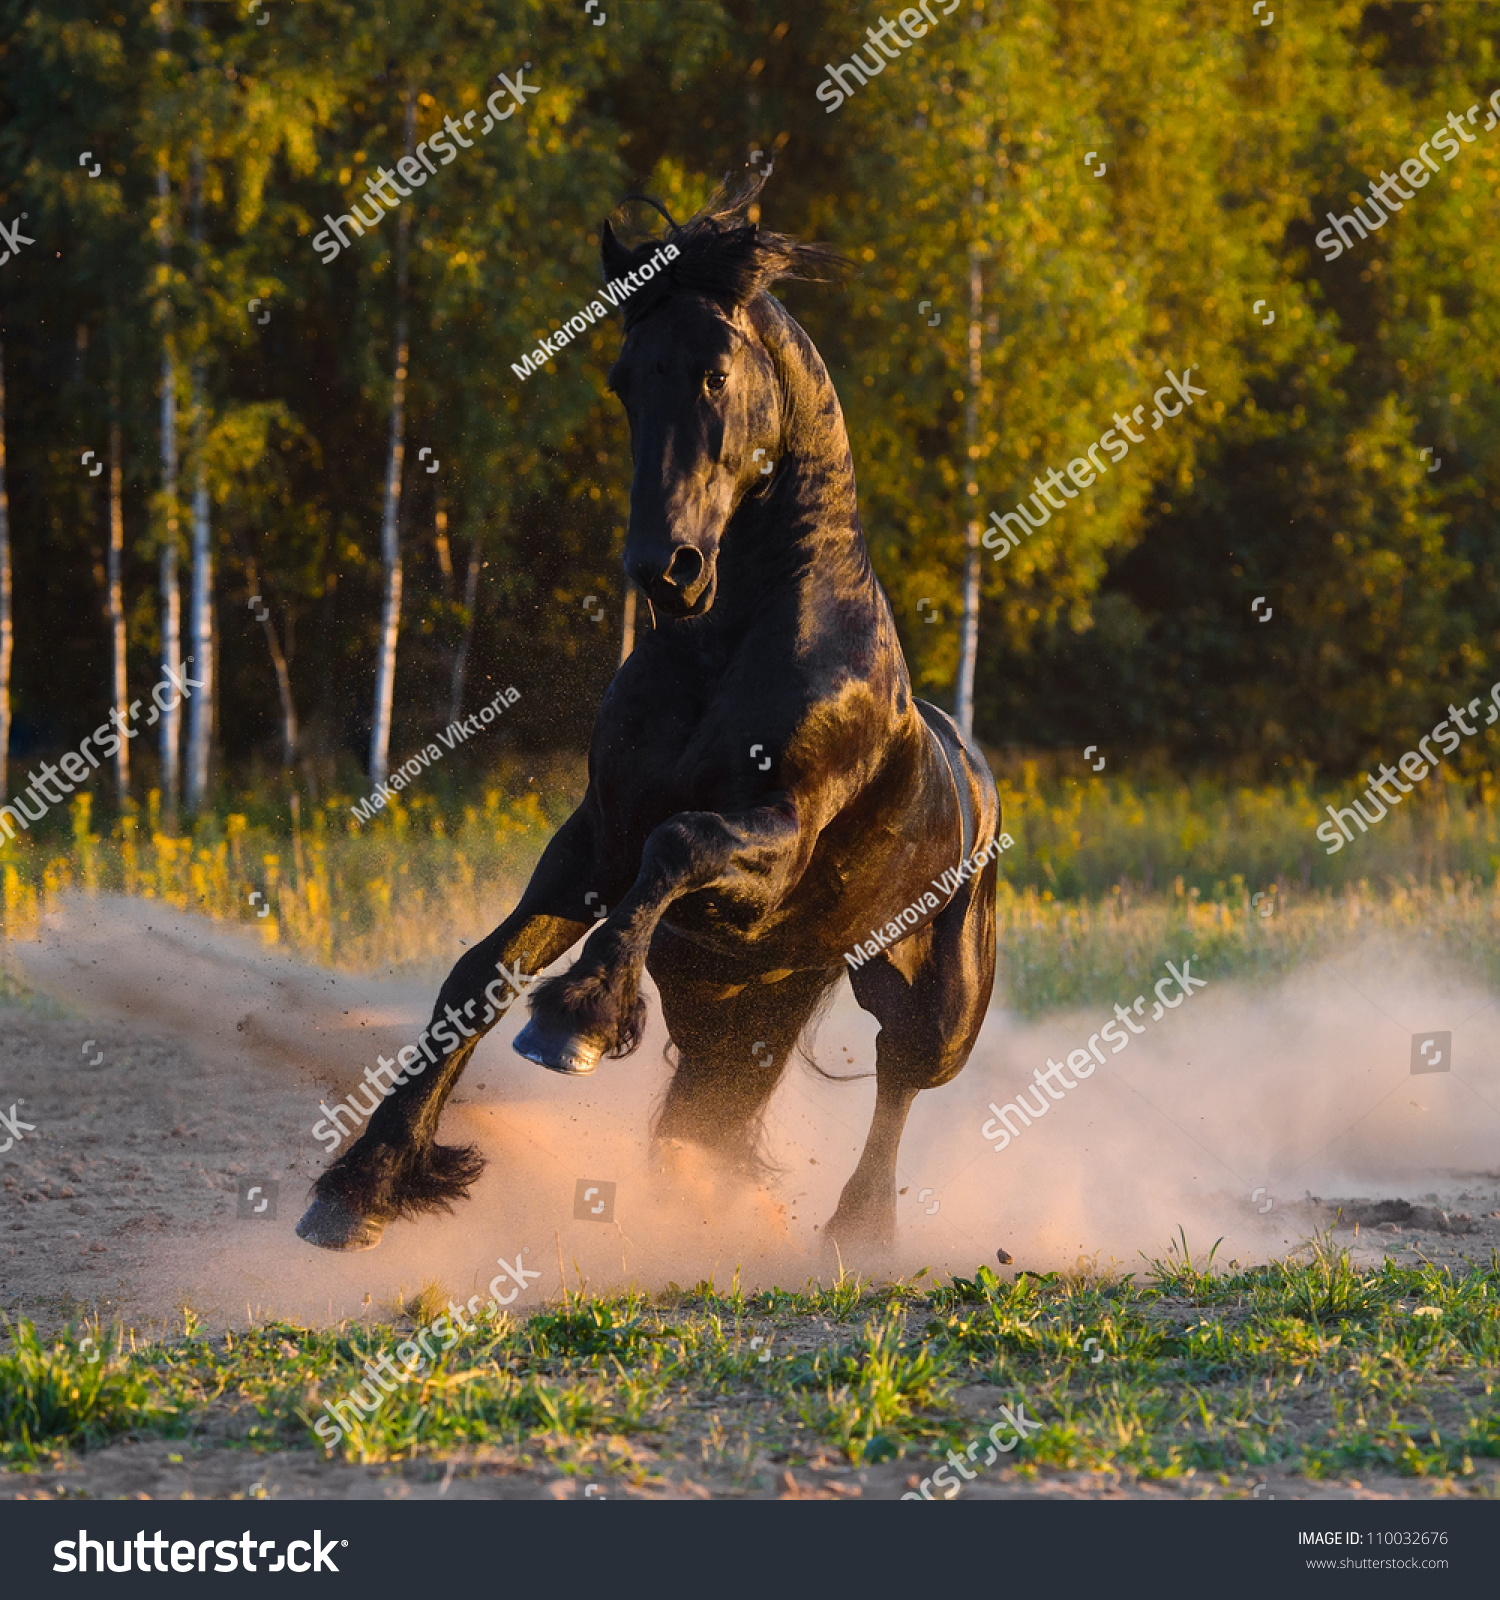 Running Horses Silhouette Wall Border Stock Photo Black Horse Runs Gallop In The